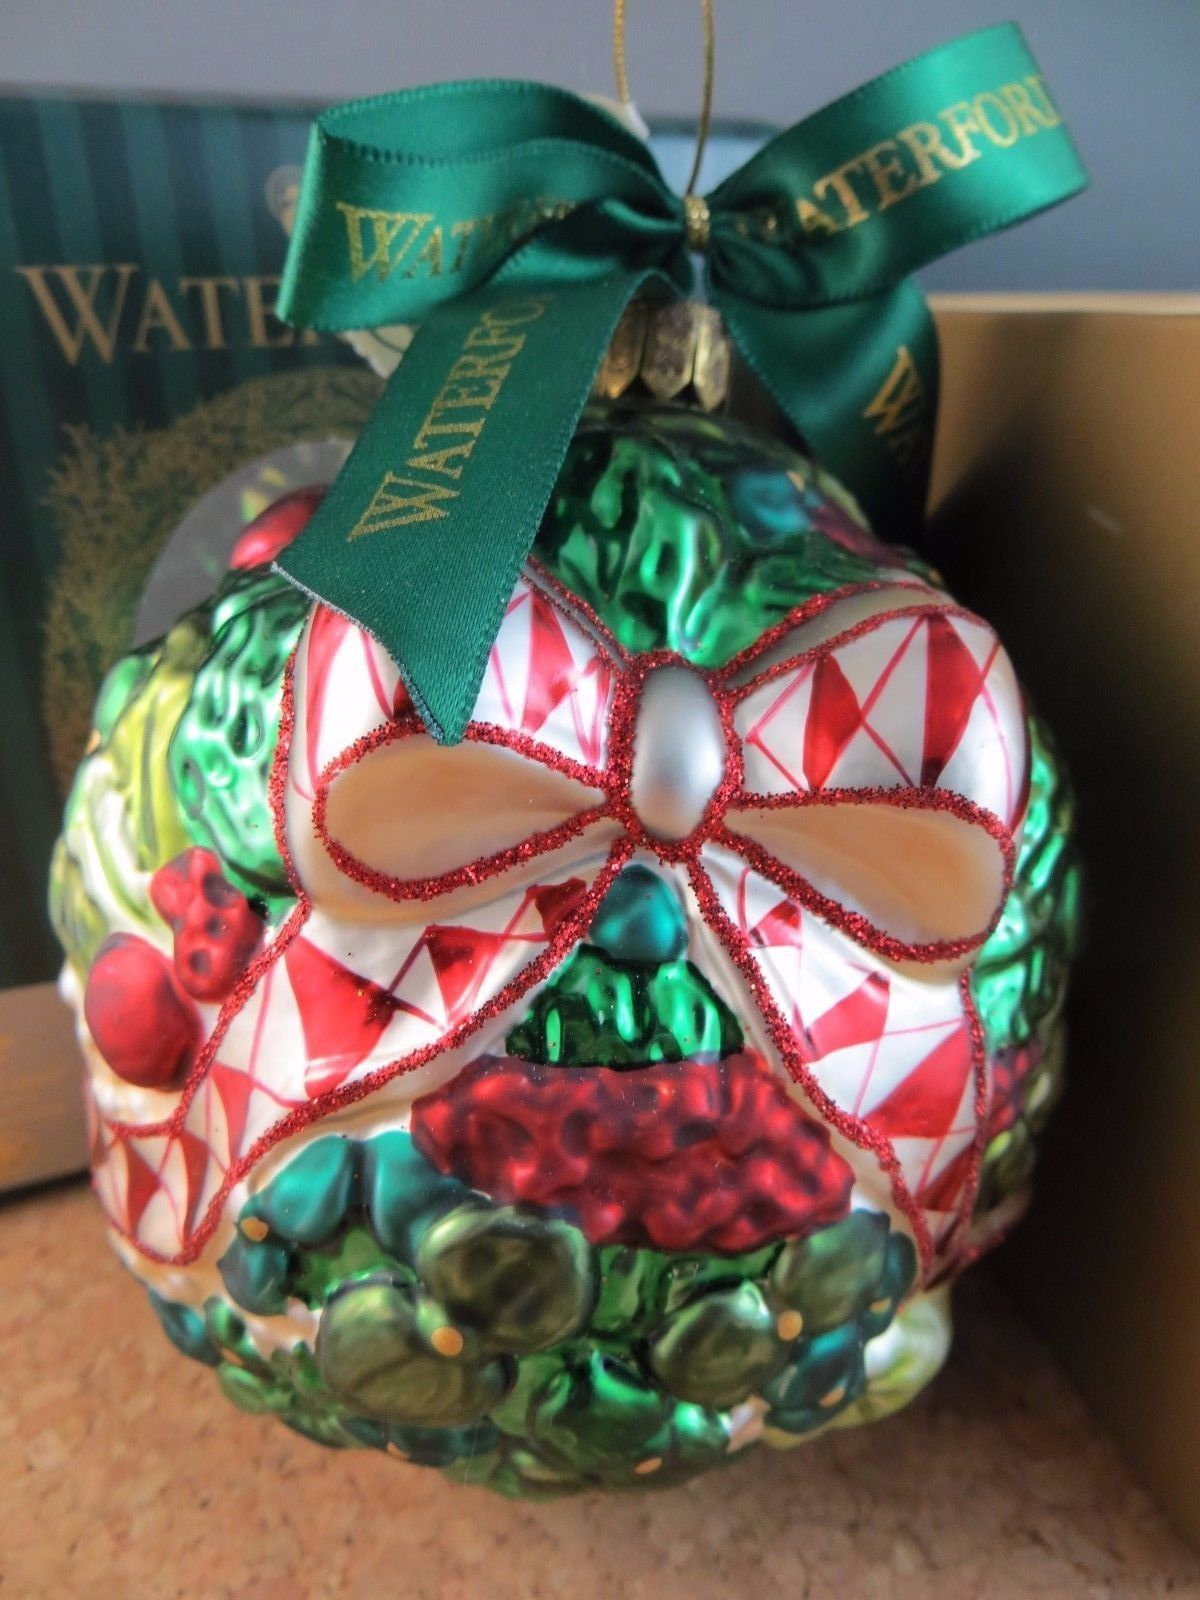 Waterford Holiday Heirloom Glass Christmas Ornament Kissing Ball 4 ...